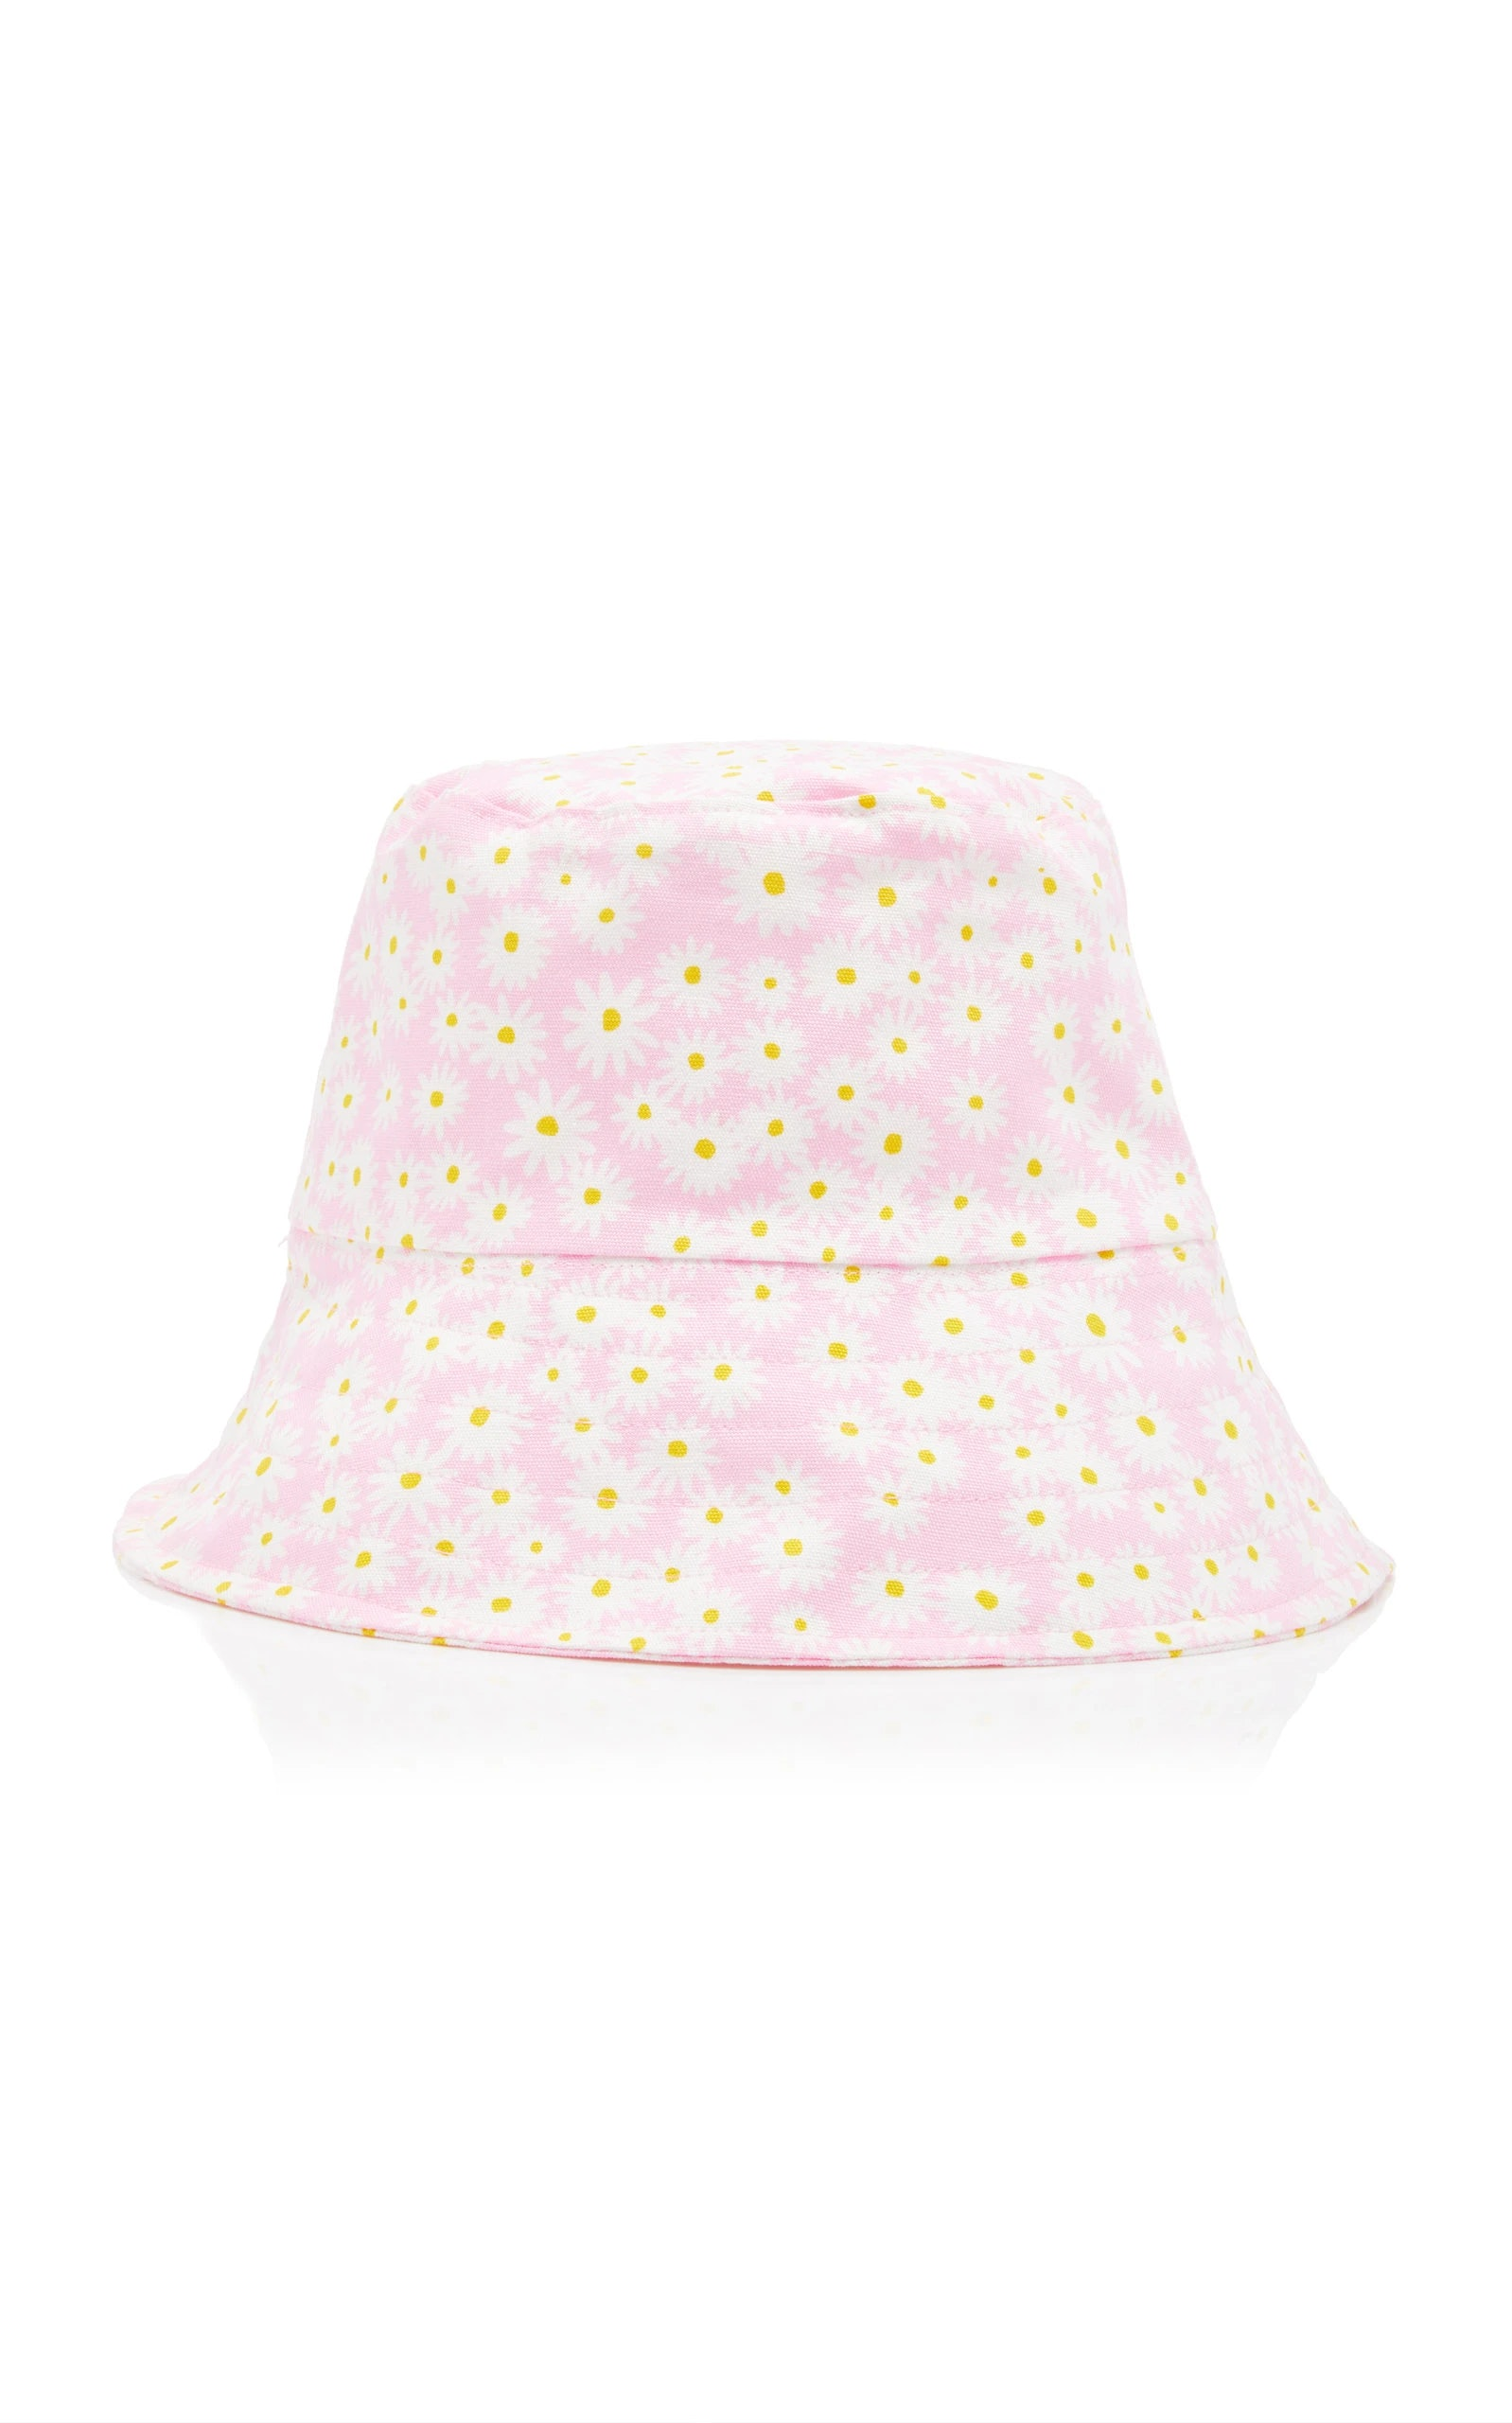 20 Actually Cute Bucket Hats For Summer 2019 That Will Delight Your